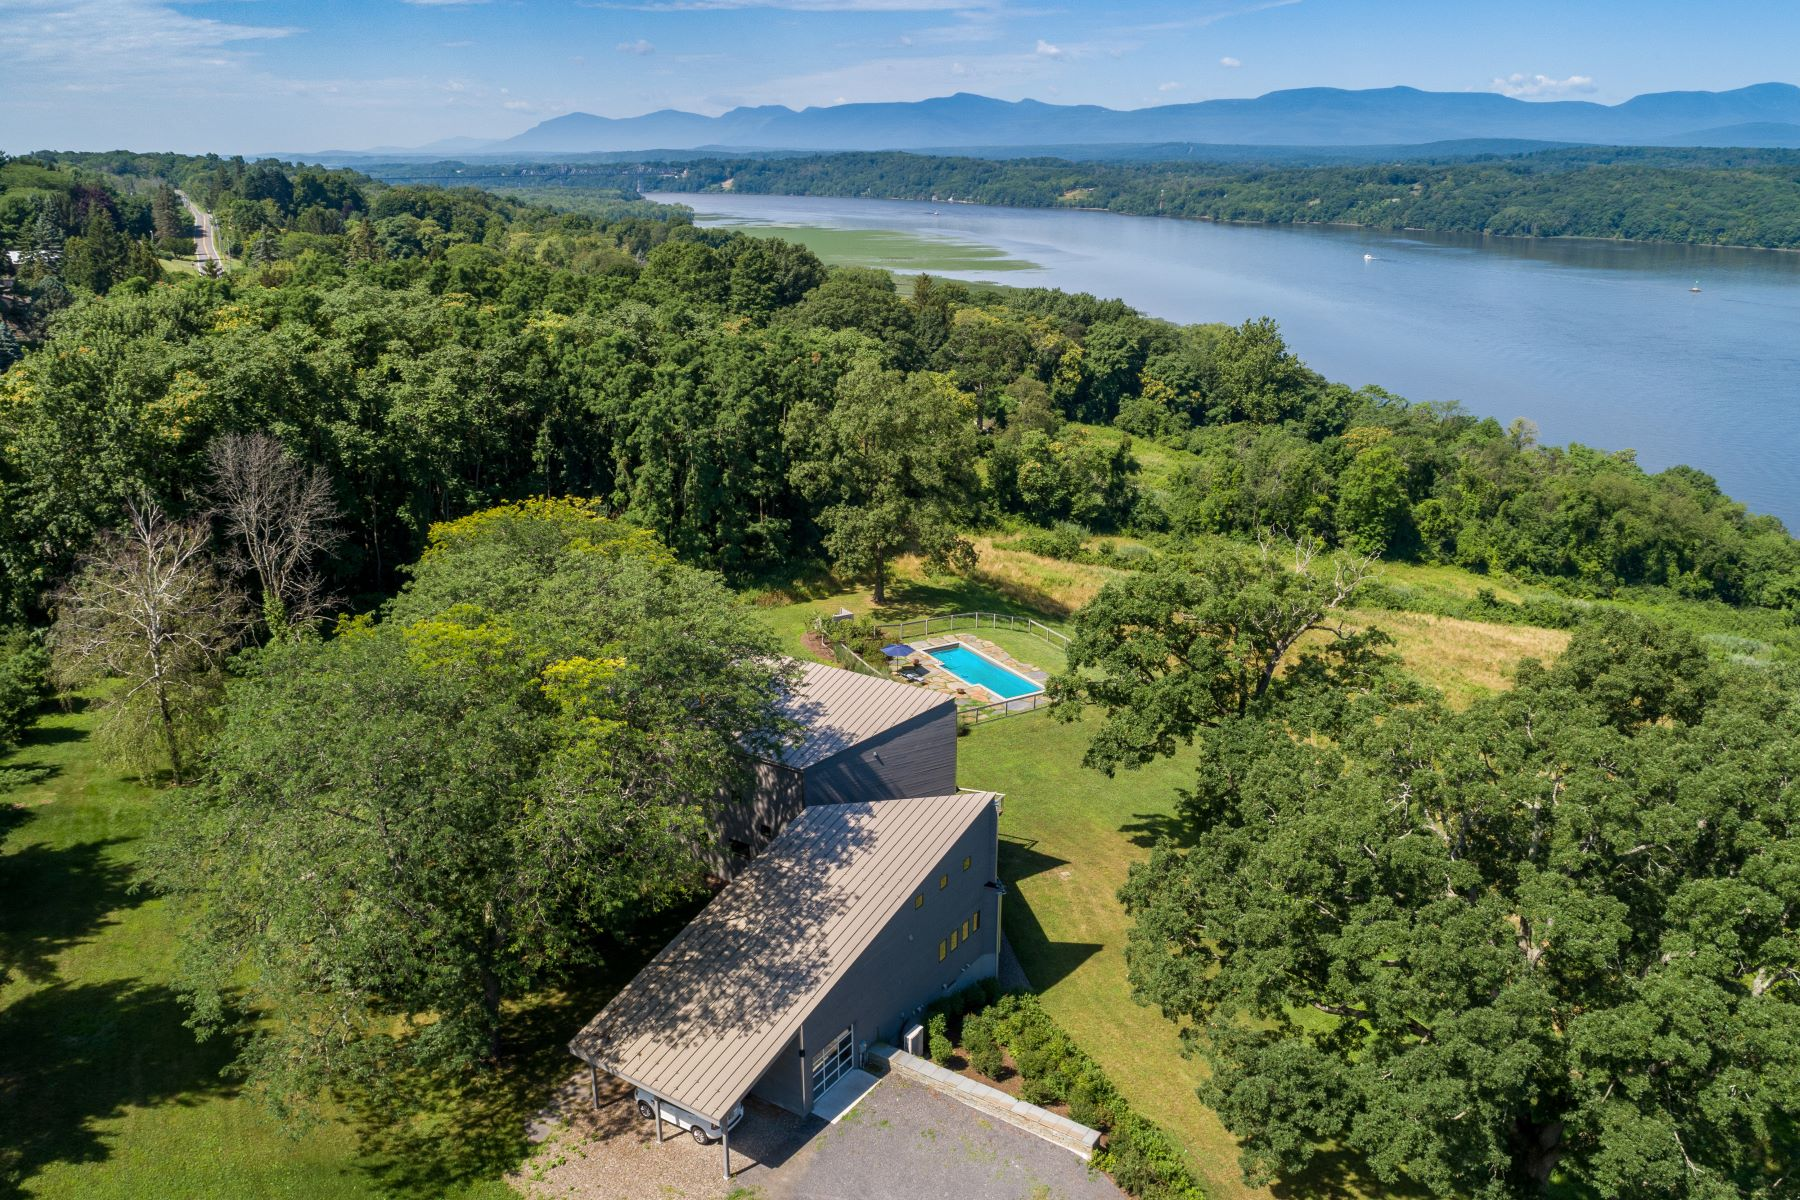 Single Family Homes for Sale at Modernist Masterpiece On The Hudson 170 Mount Merino Greenport, New York 12534 United States